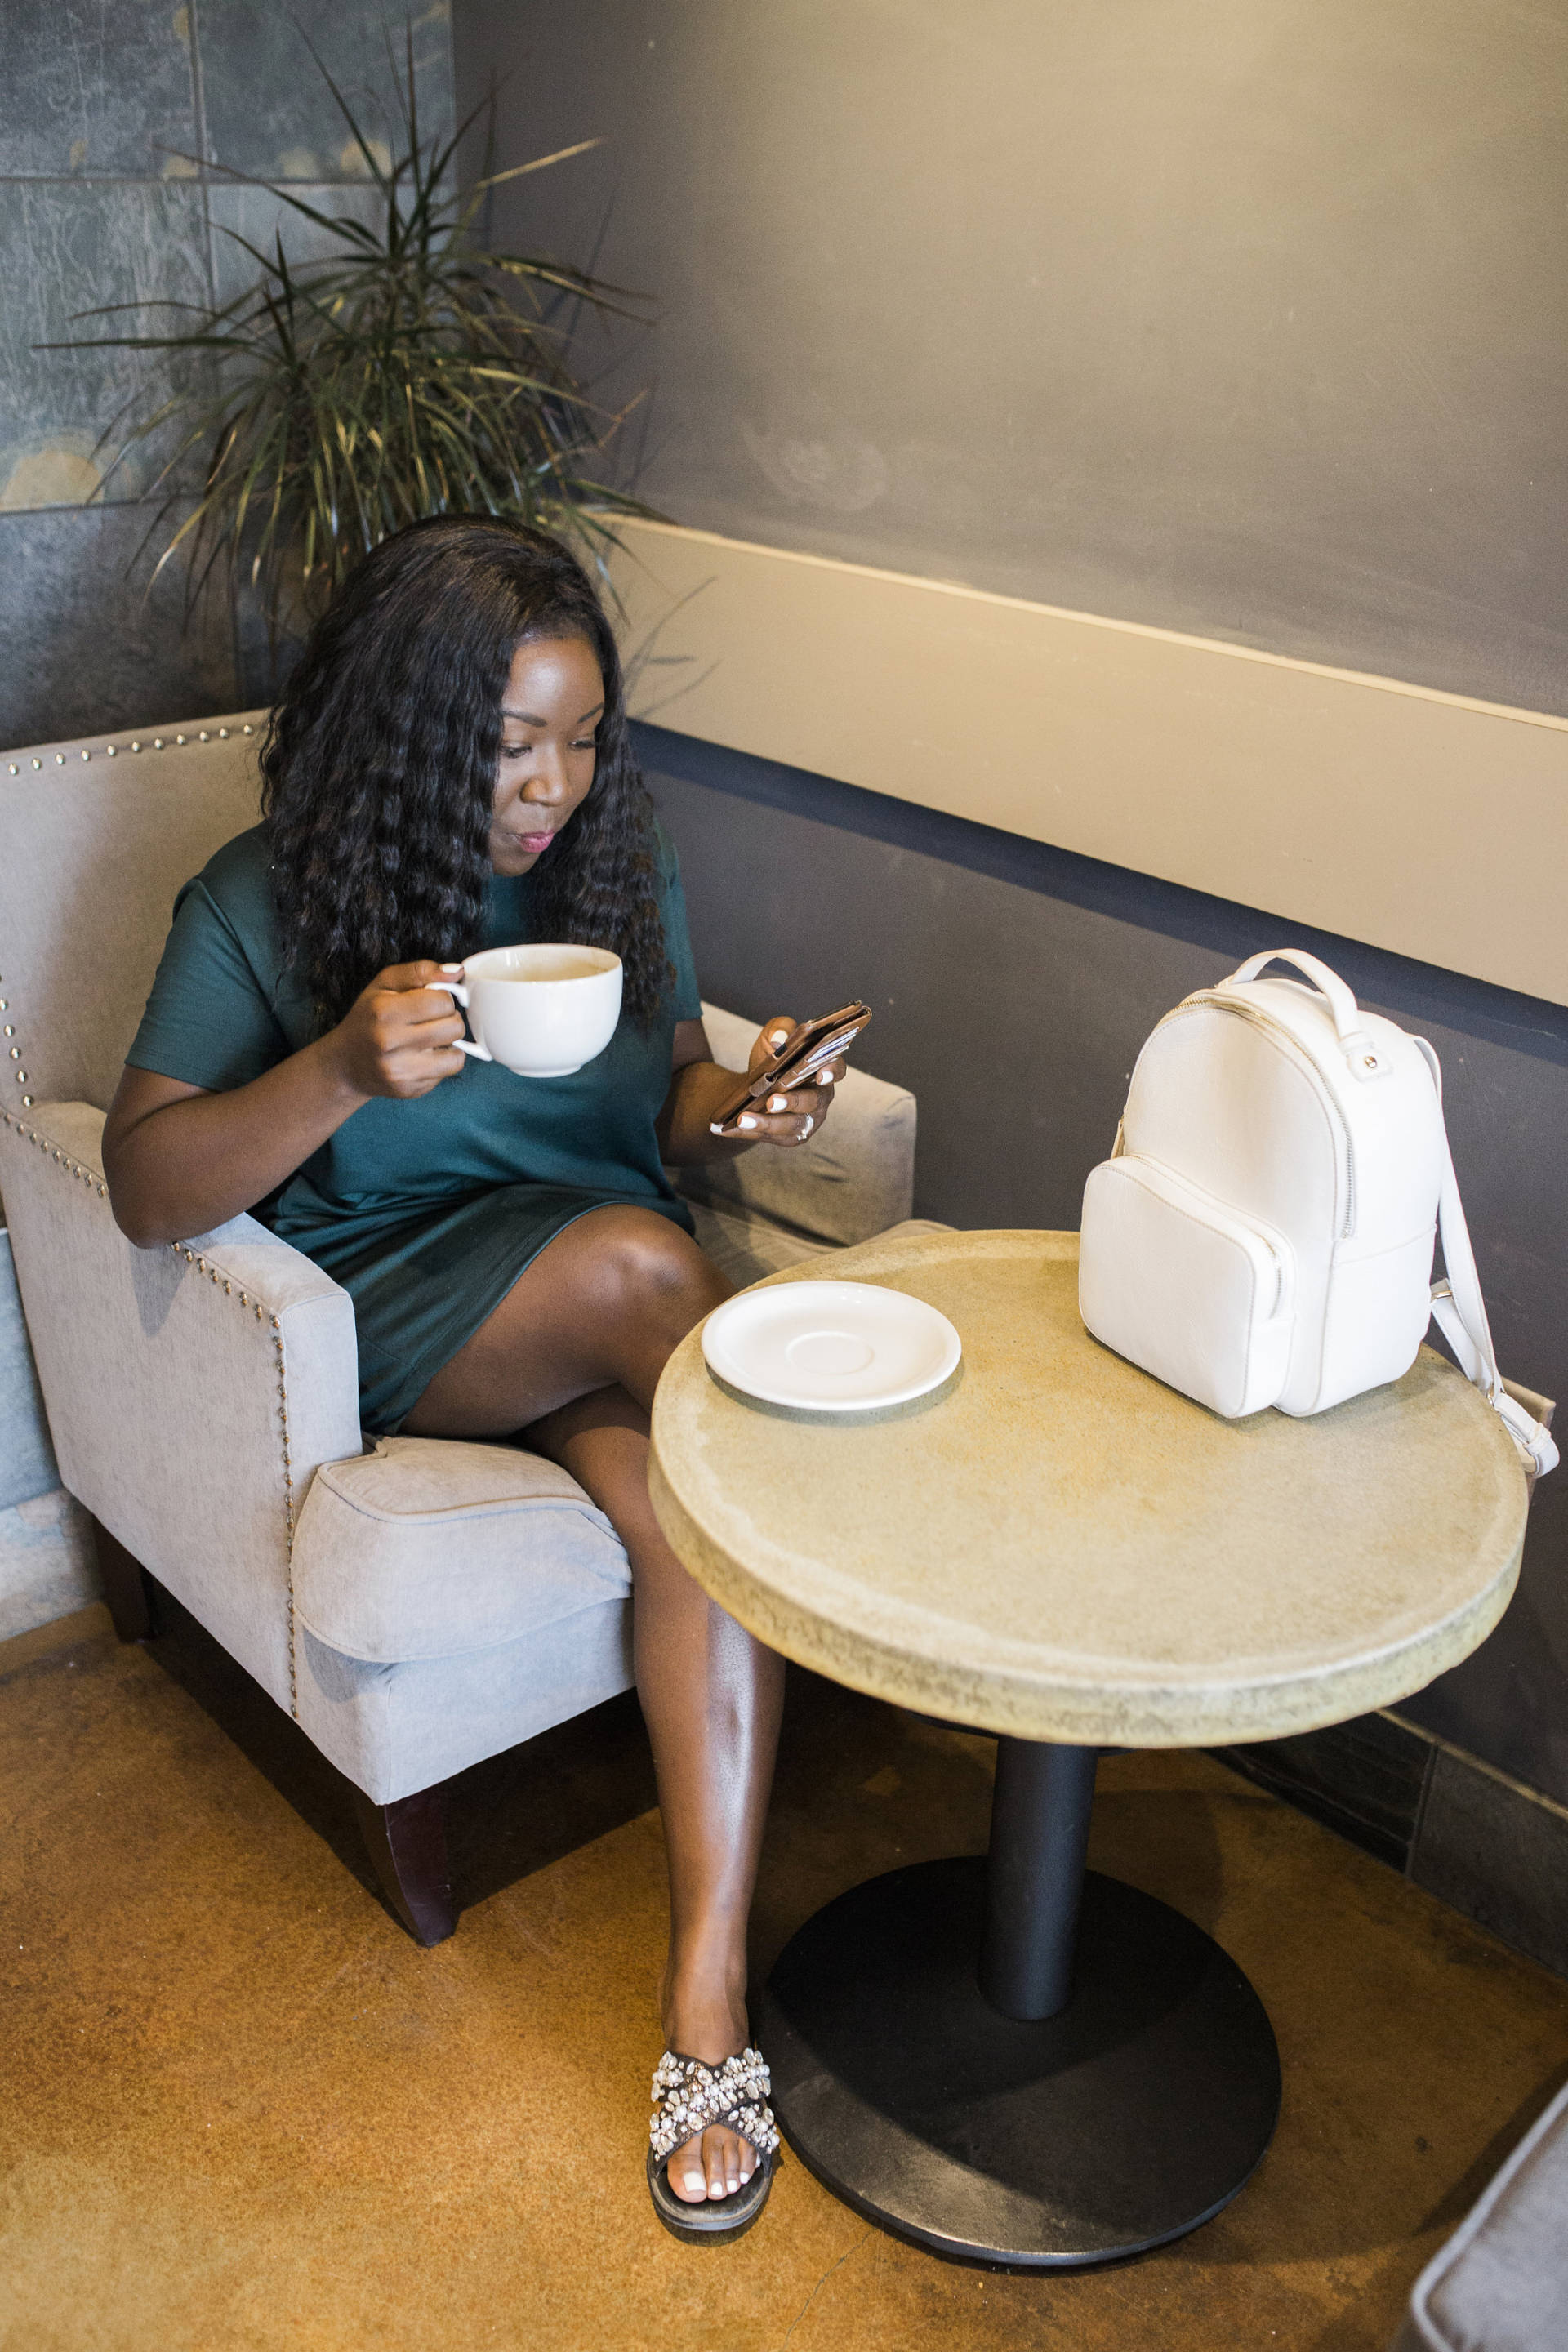 Coffee date Vol. 6: Life Lately Sharing a few life & blog updates over a nice cup of coffee! Grab yours and lets chat!